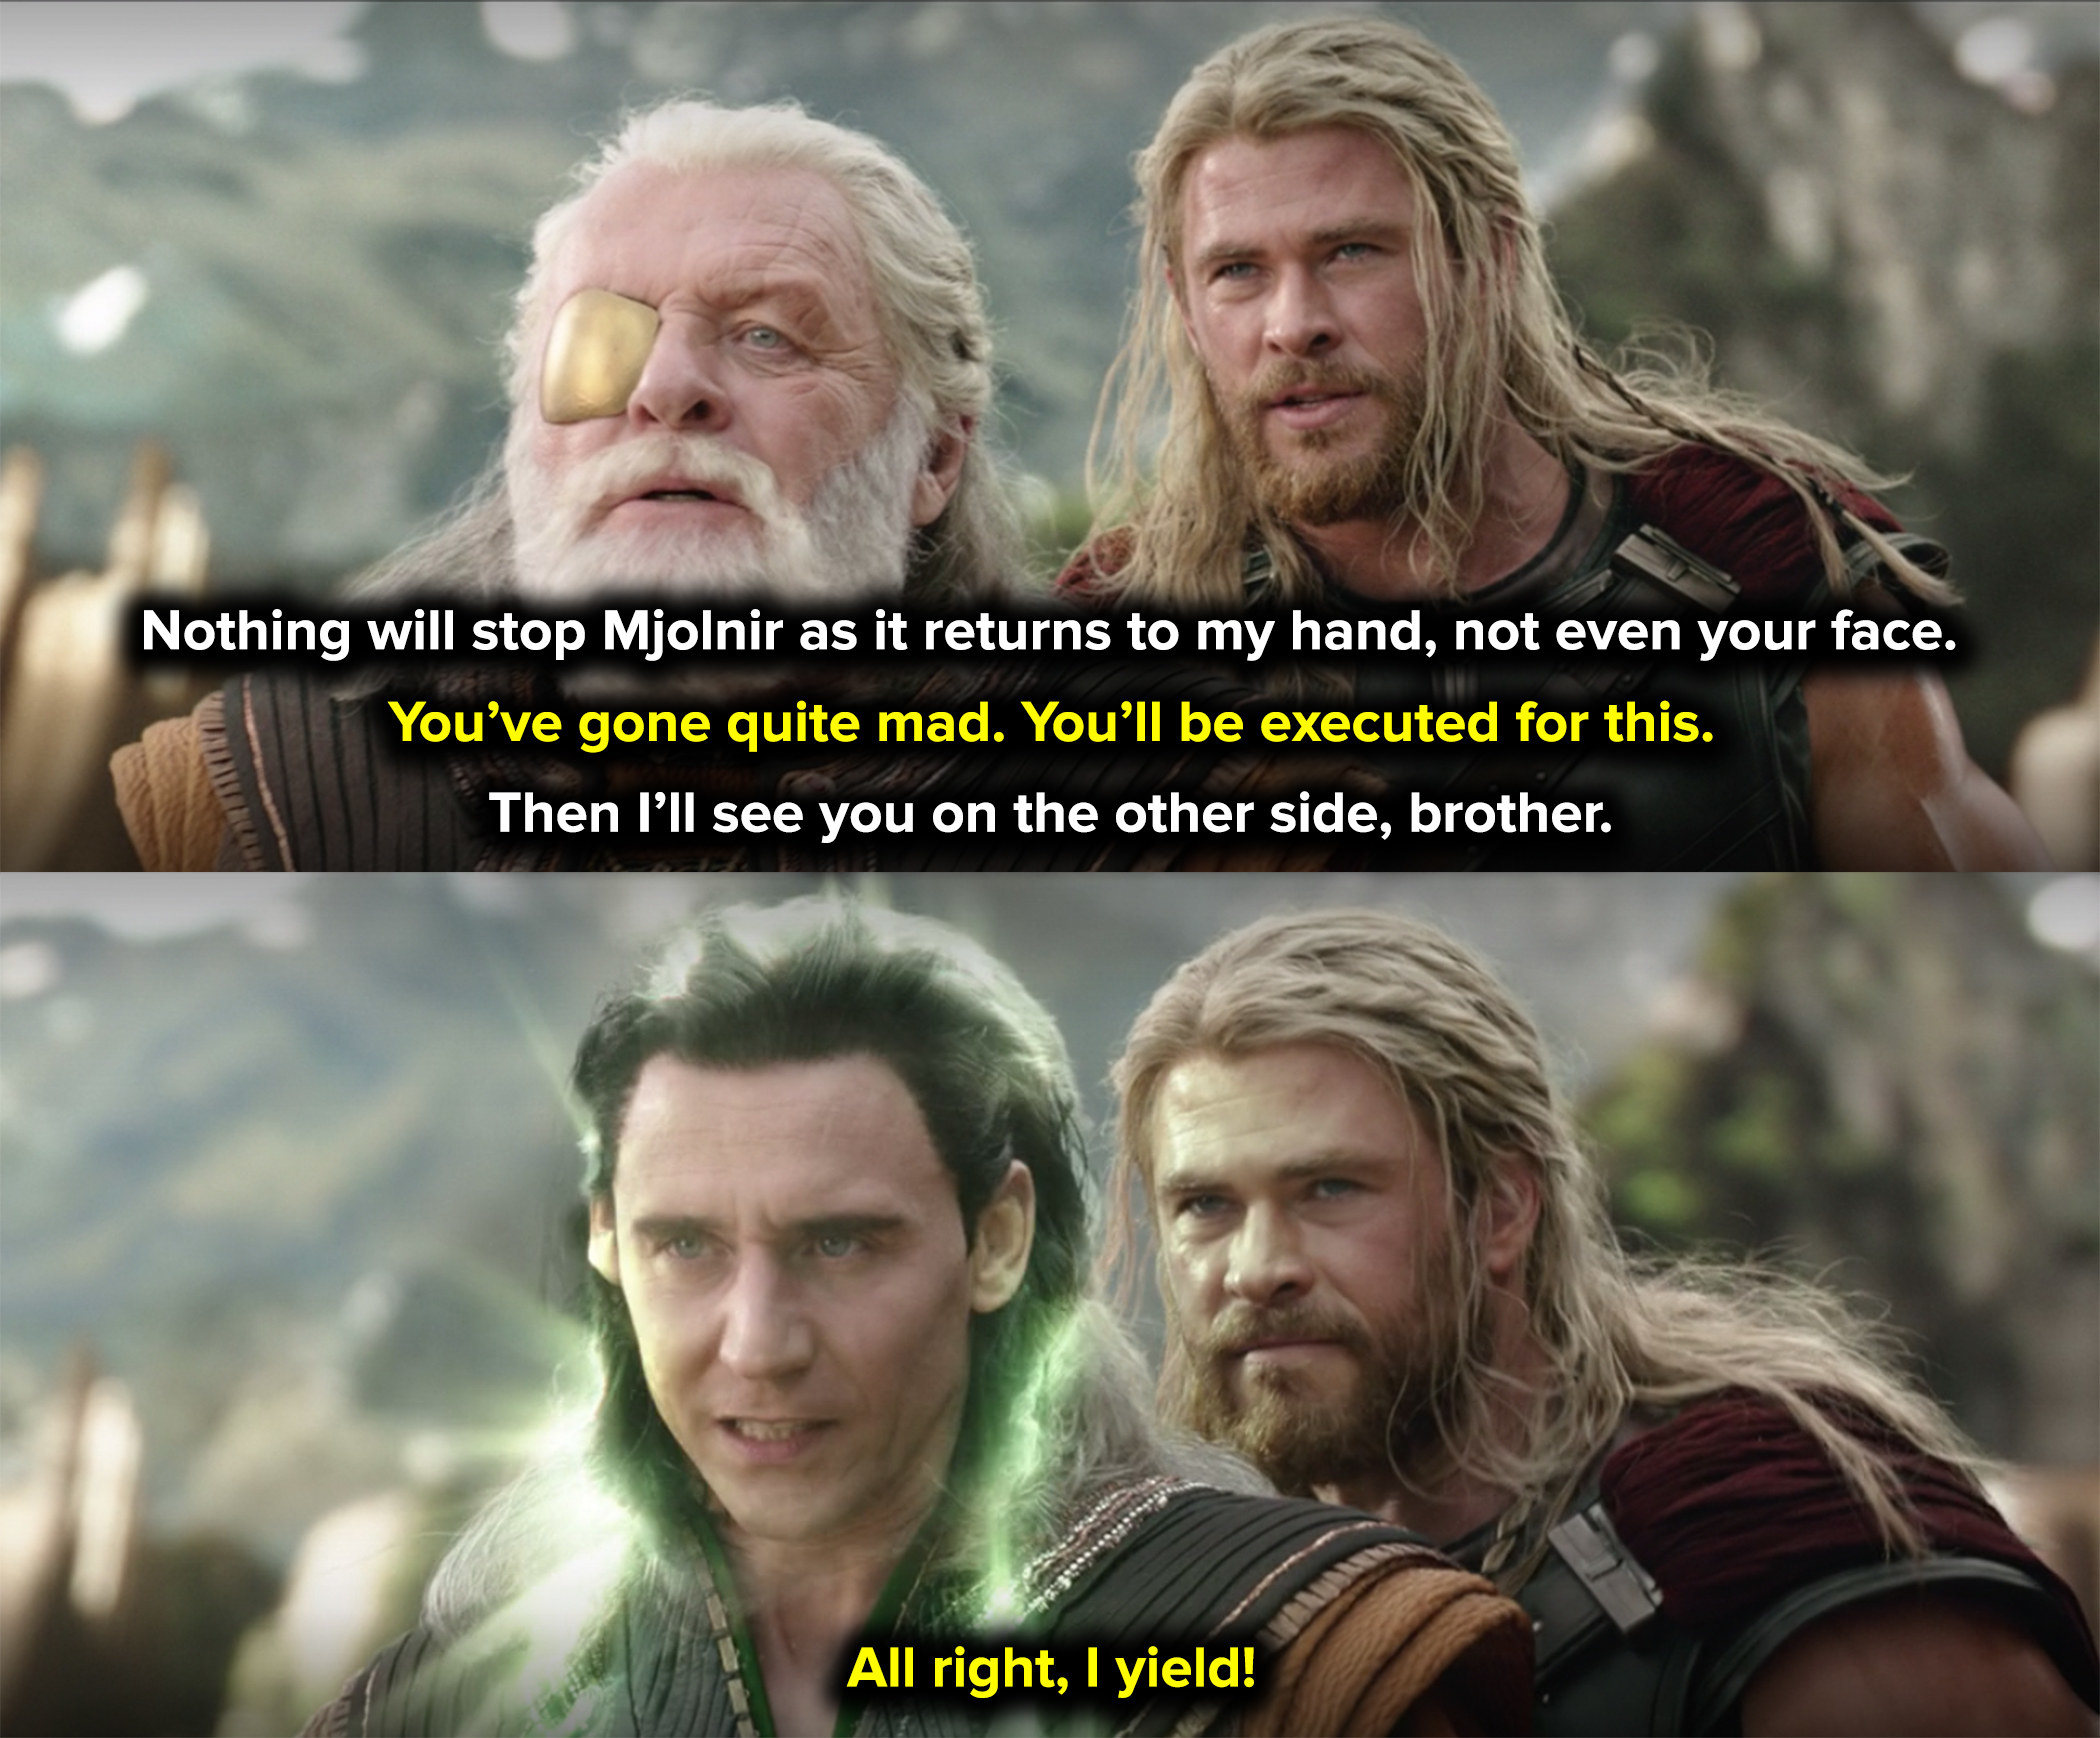 Thor threatened to kill Loki if he didn't tell the truth